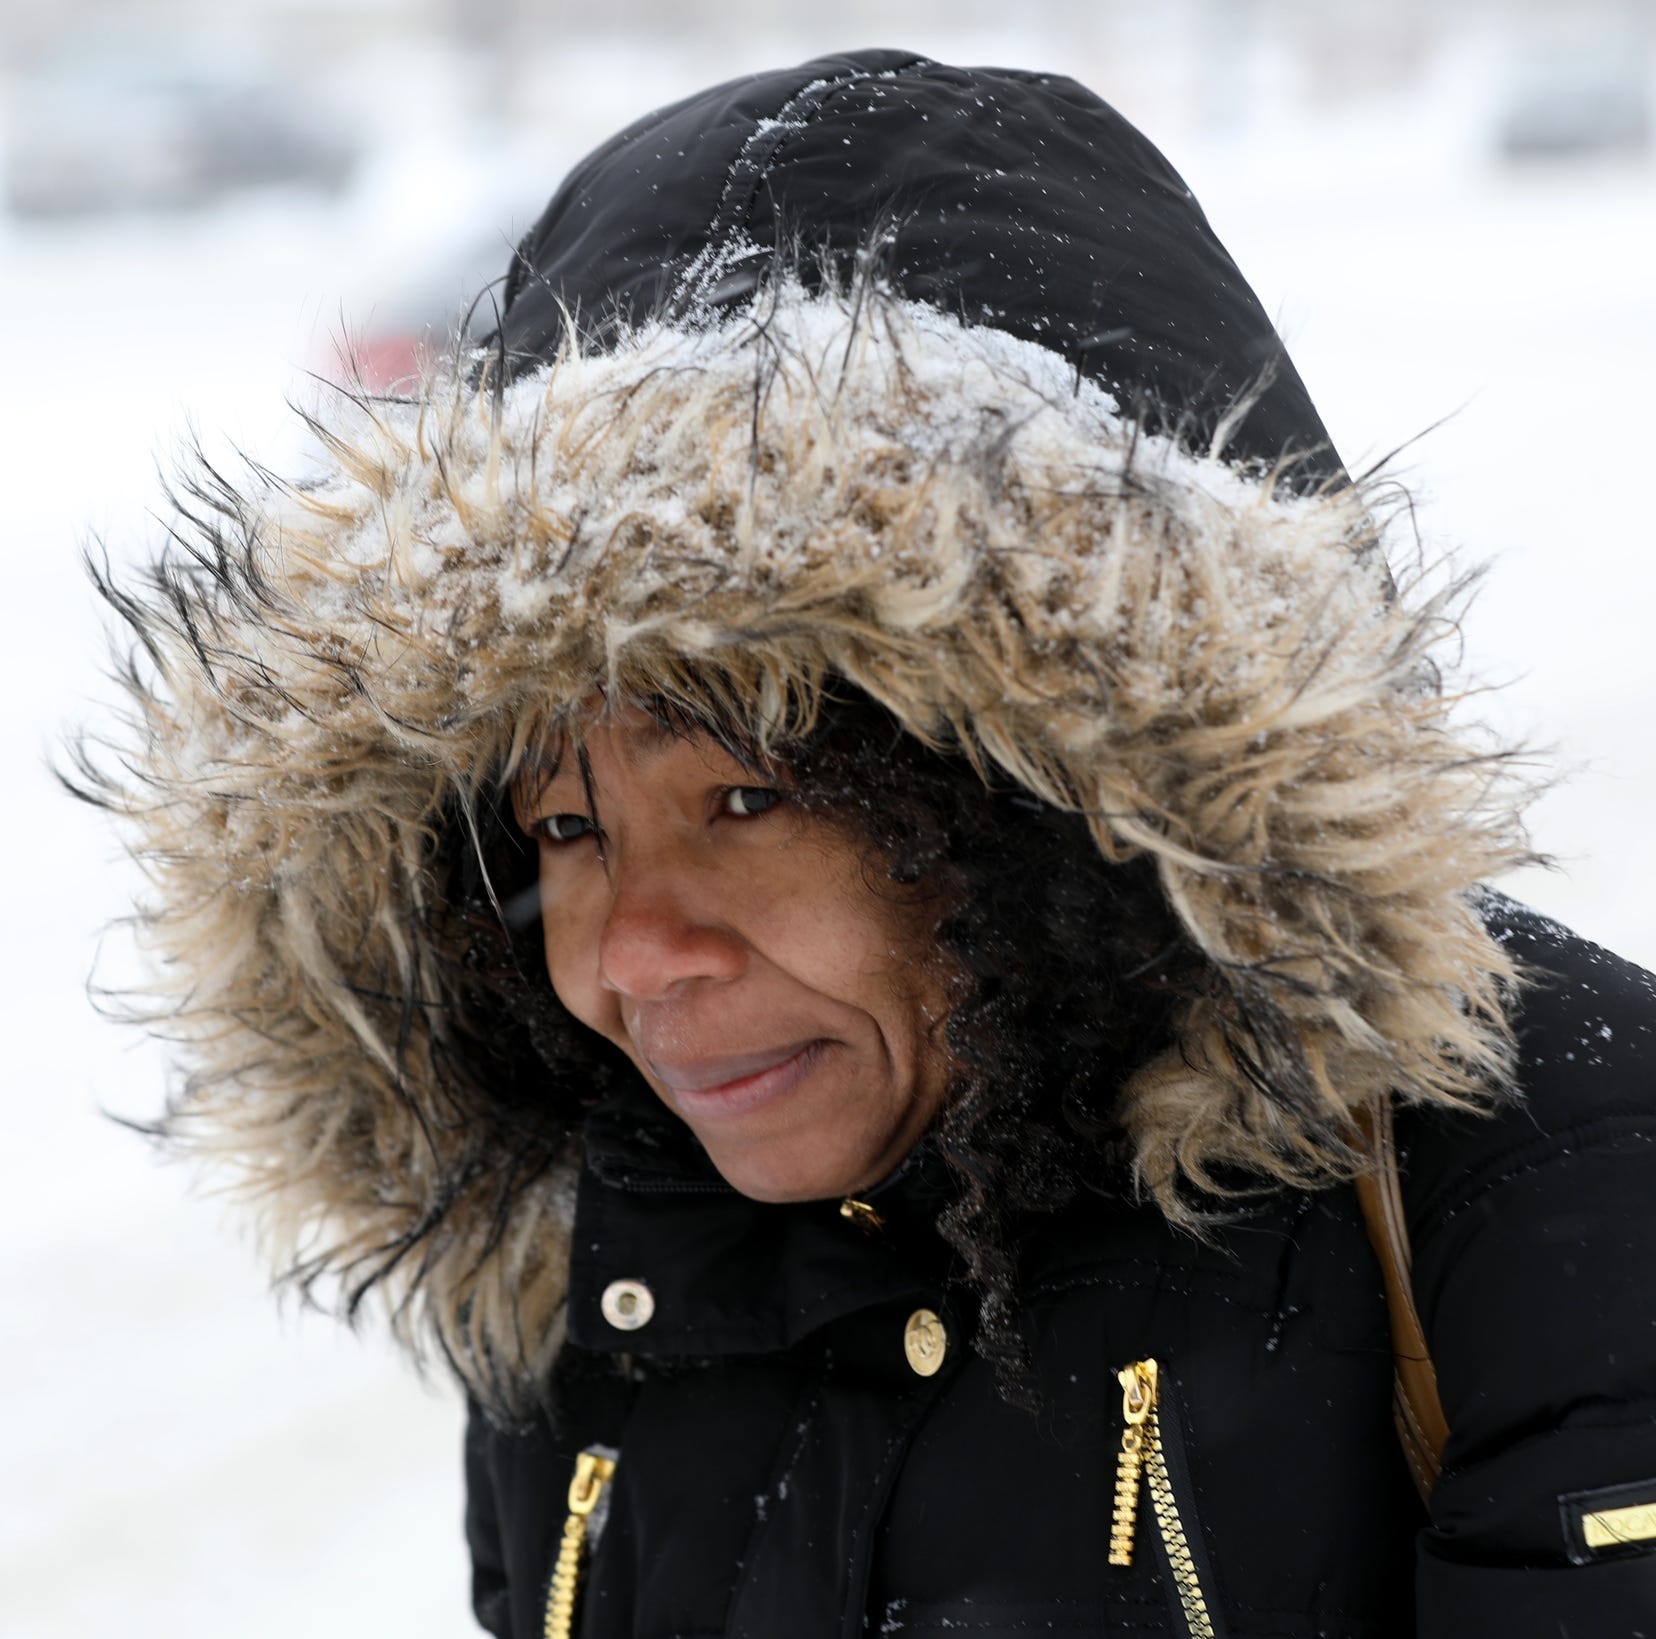 Subzero temperatures to follow at least 4 in. of snow in metro Detroit